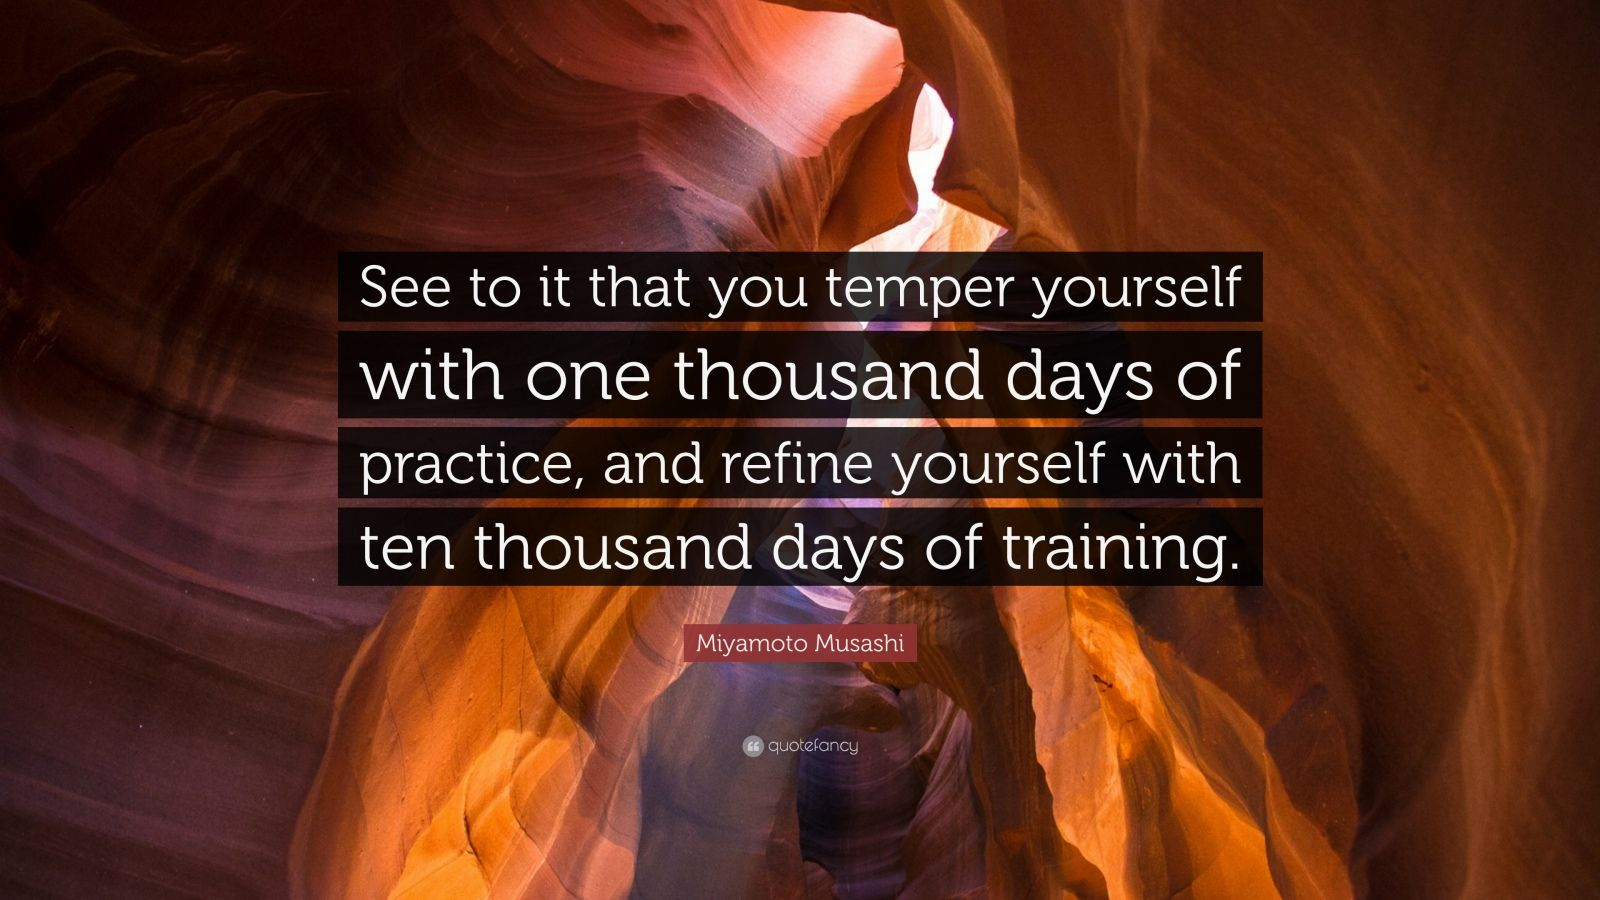 """Miyamoto Musashi Quote: """"See to it that you temper yourself with one thousand days of practice, and refine yourself with ten thousand days of training."""""""